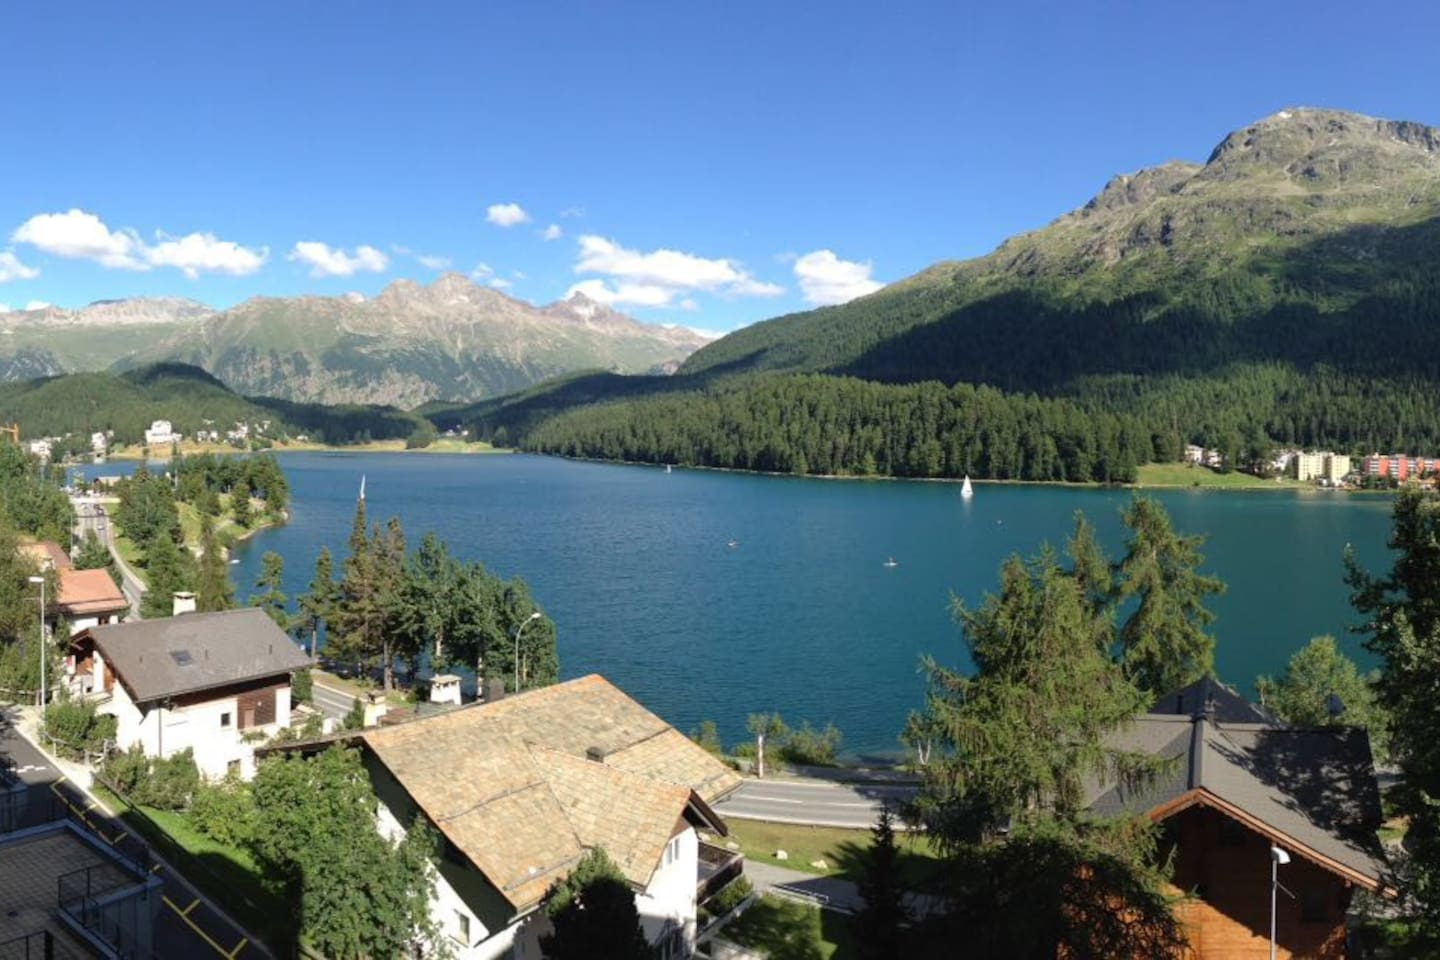 View of St Moritz's lake from the balcony